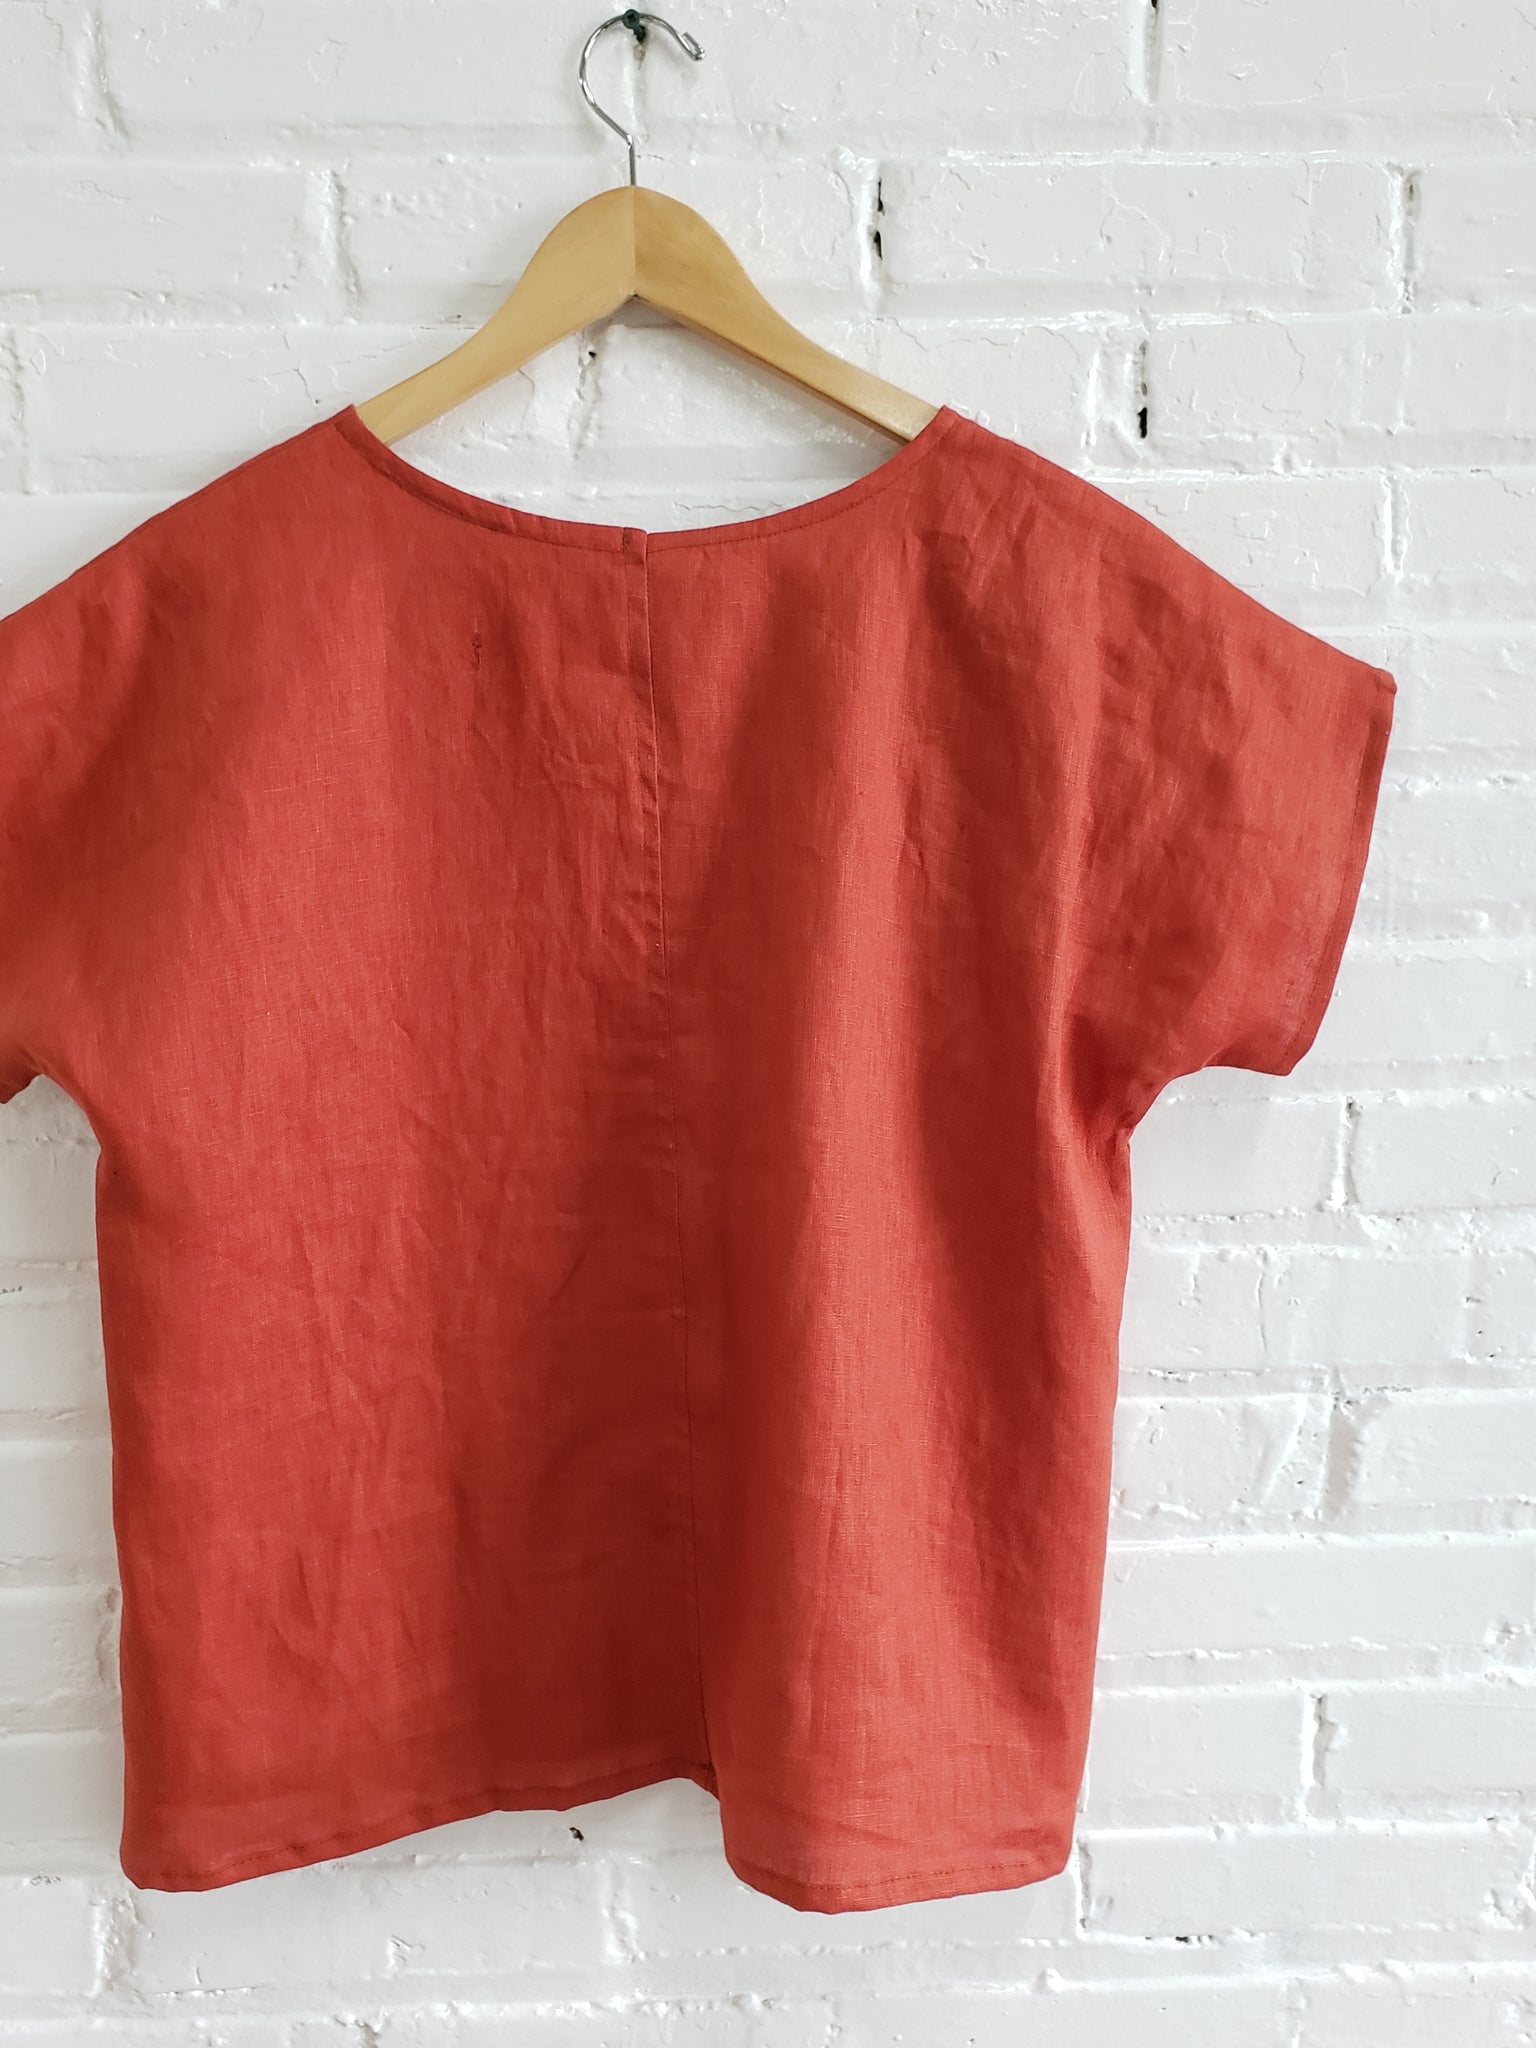 red linen womens tee hanging on white brick wall with a wooden hanger